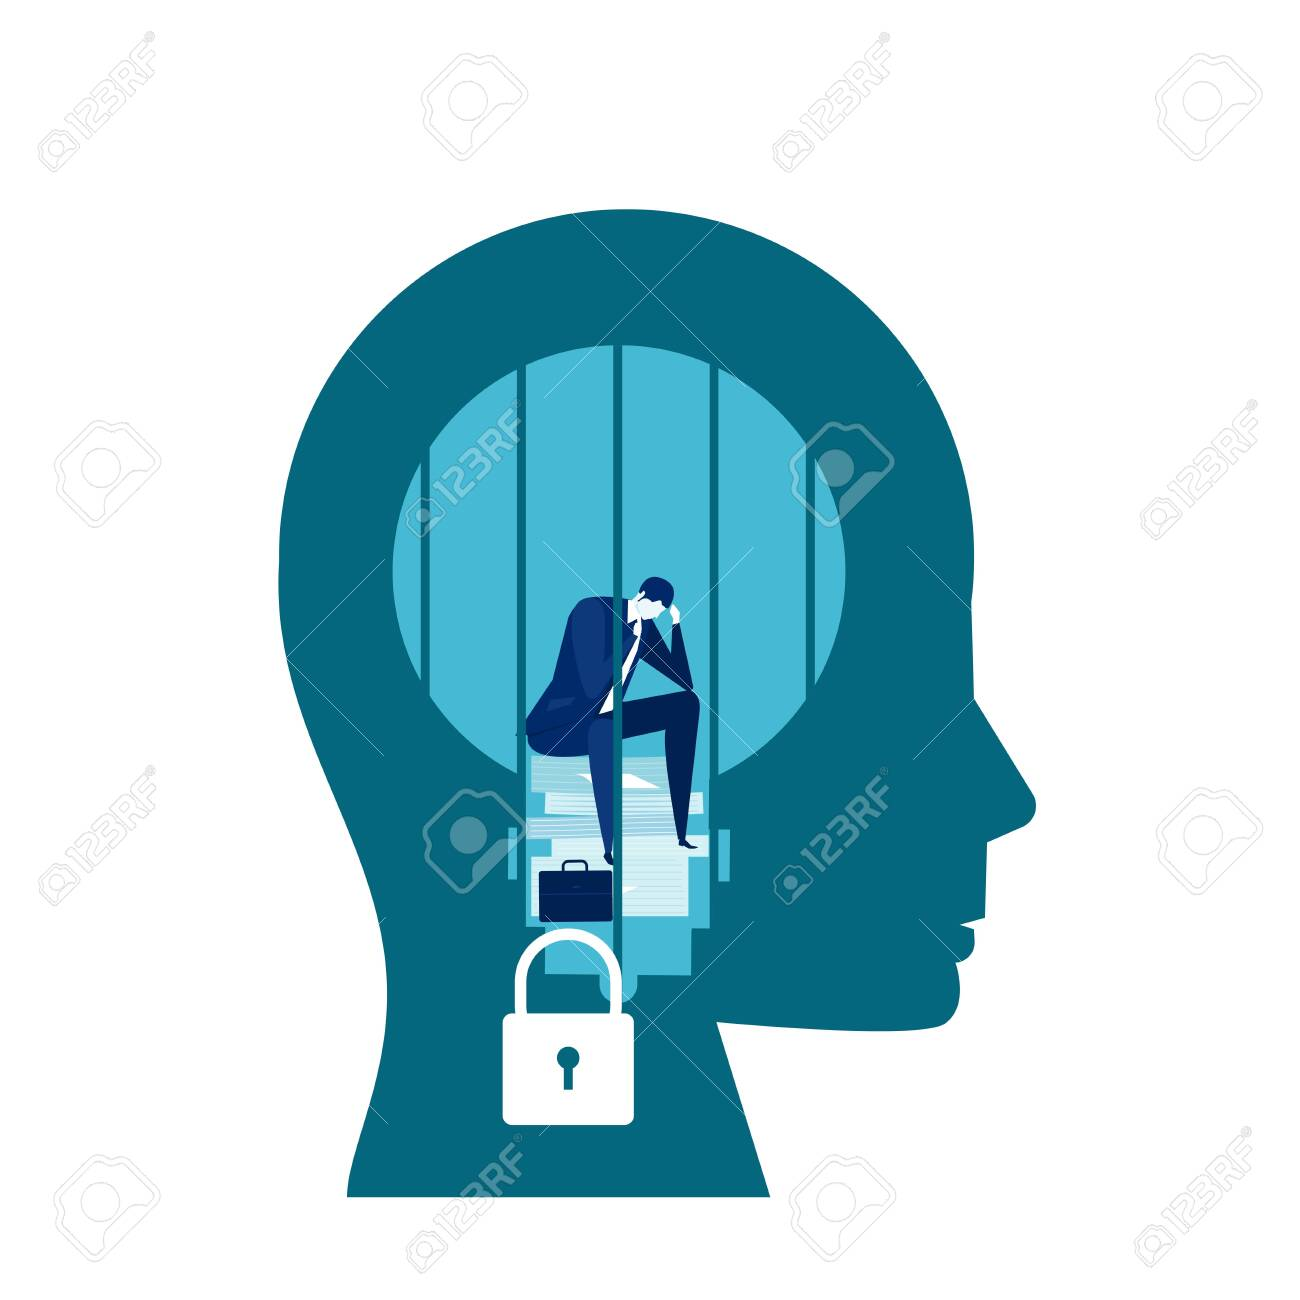 business man sad is sitting and crying in a screaming head prison fixed mindset concept vector - 154345812